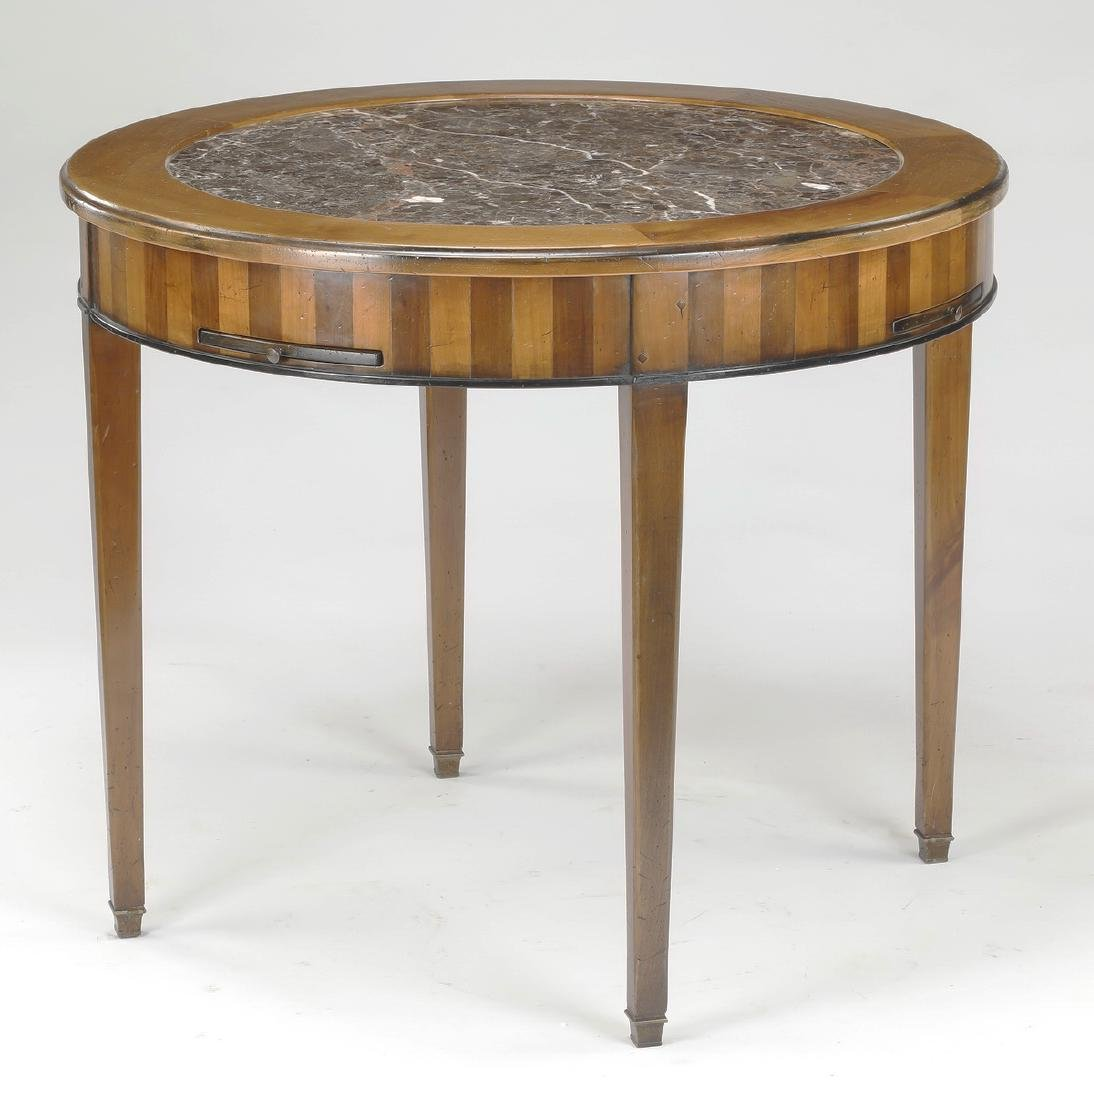 19th c. French walnut marble top games table